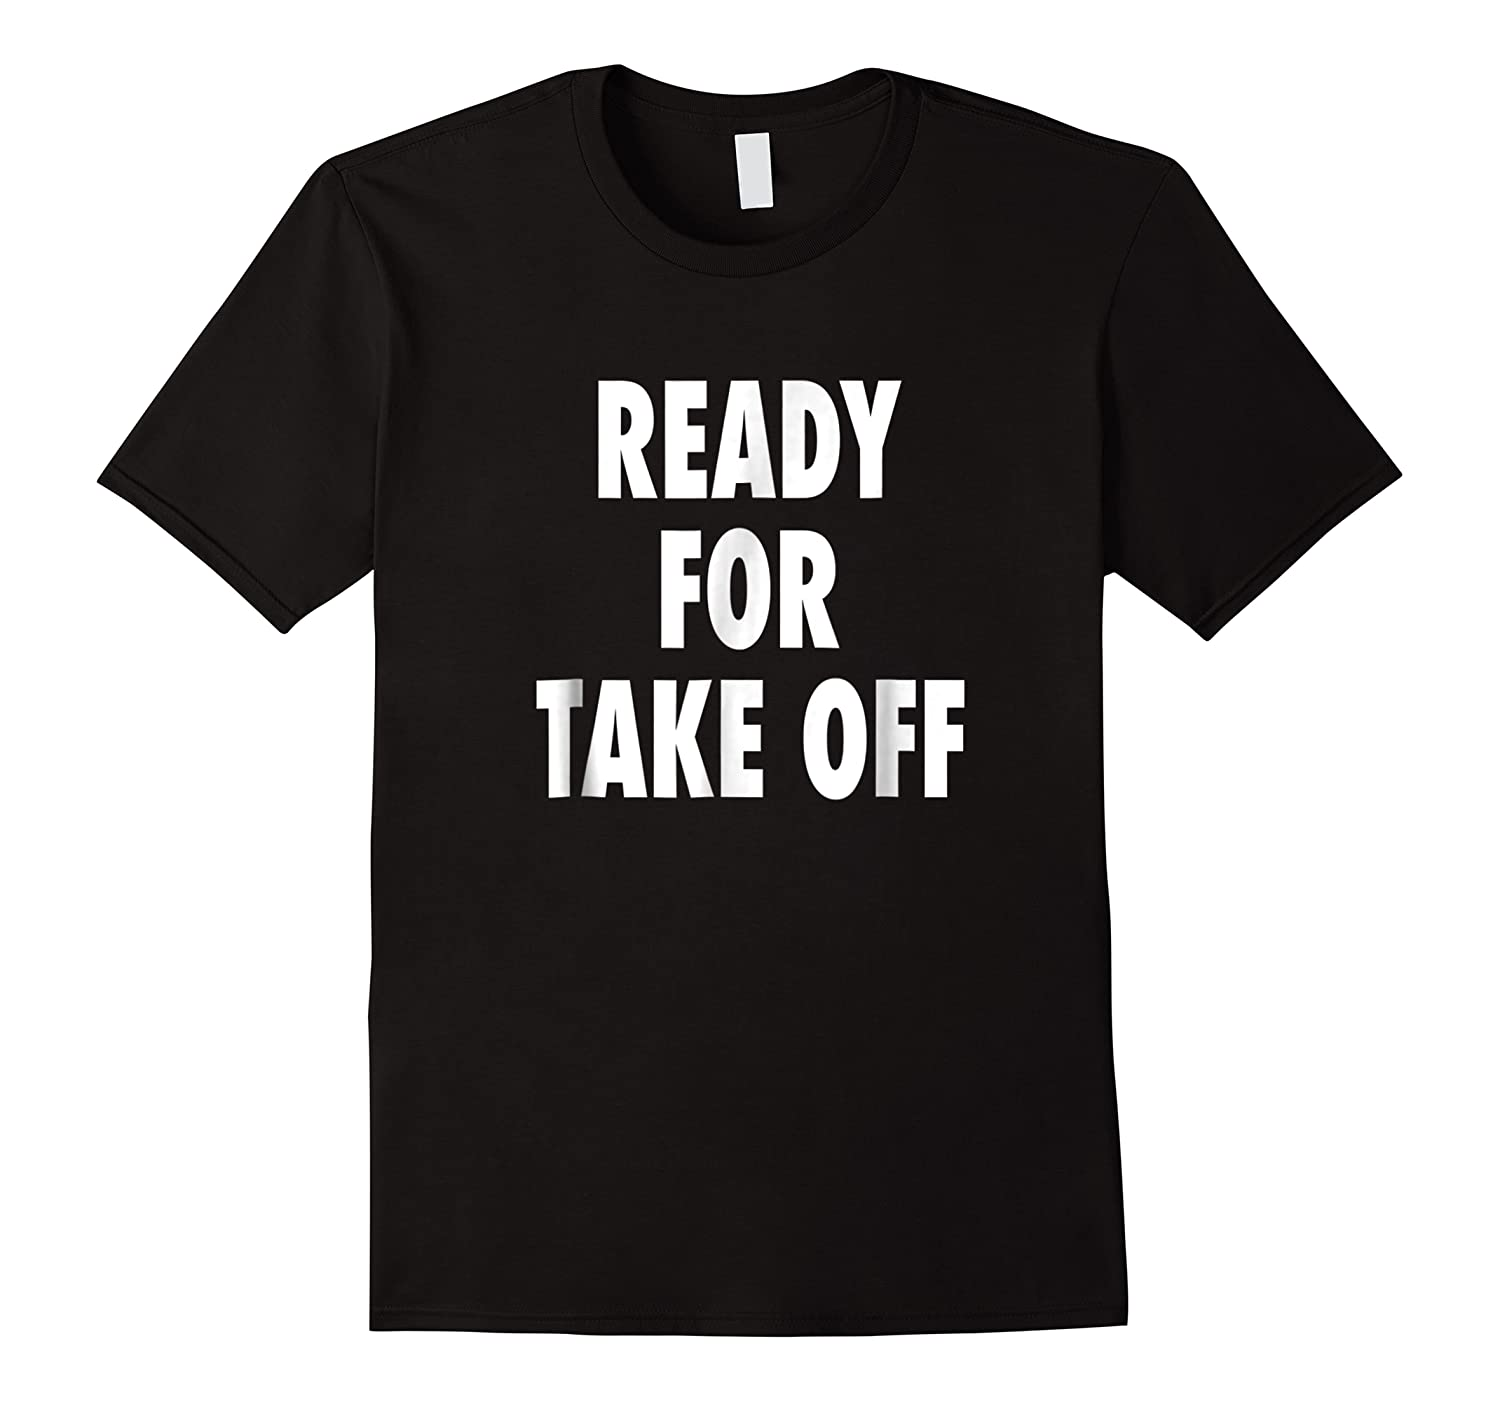 Ready For Take Off - Motivational Travel Vacay Quote T-shirt